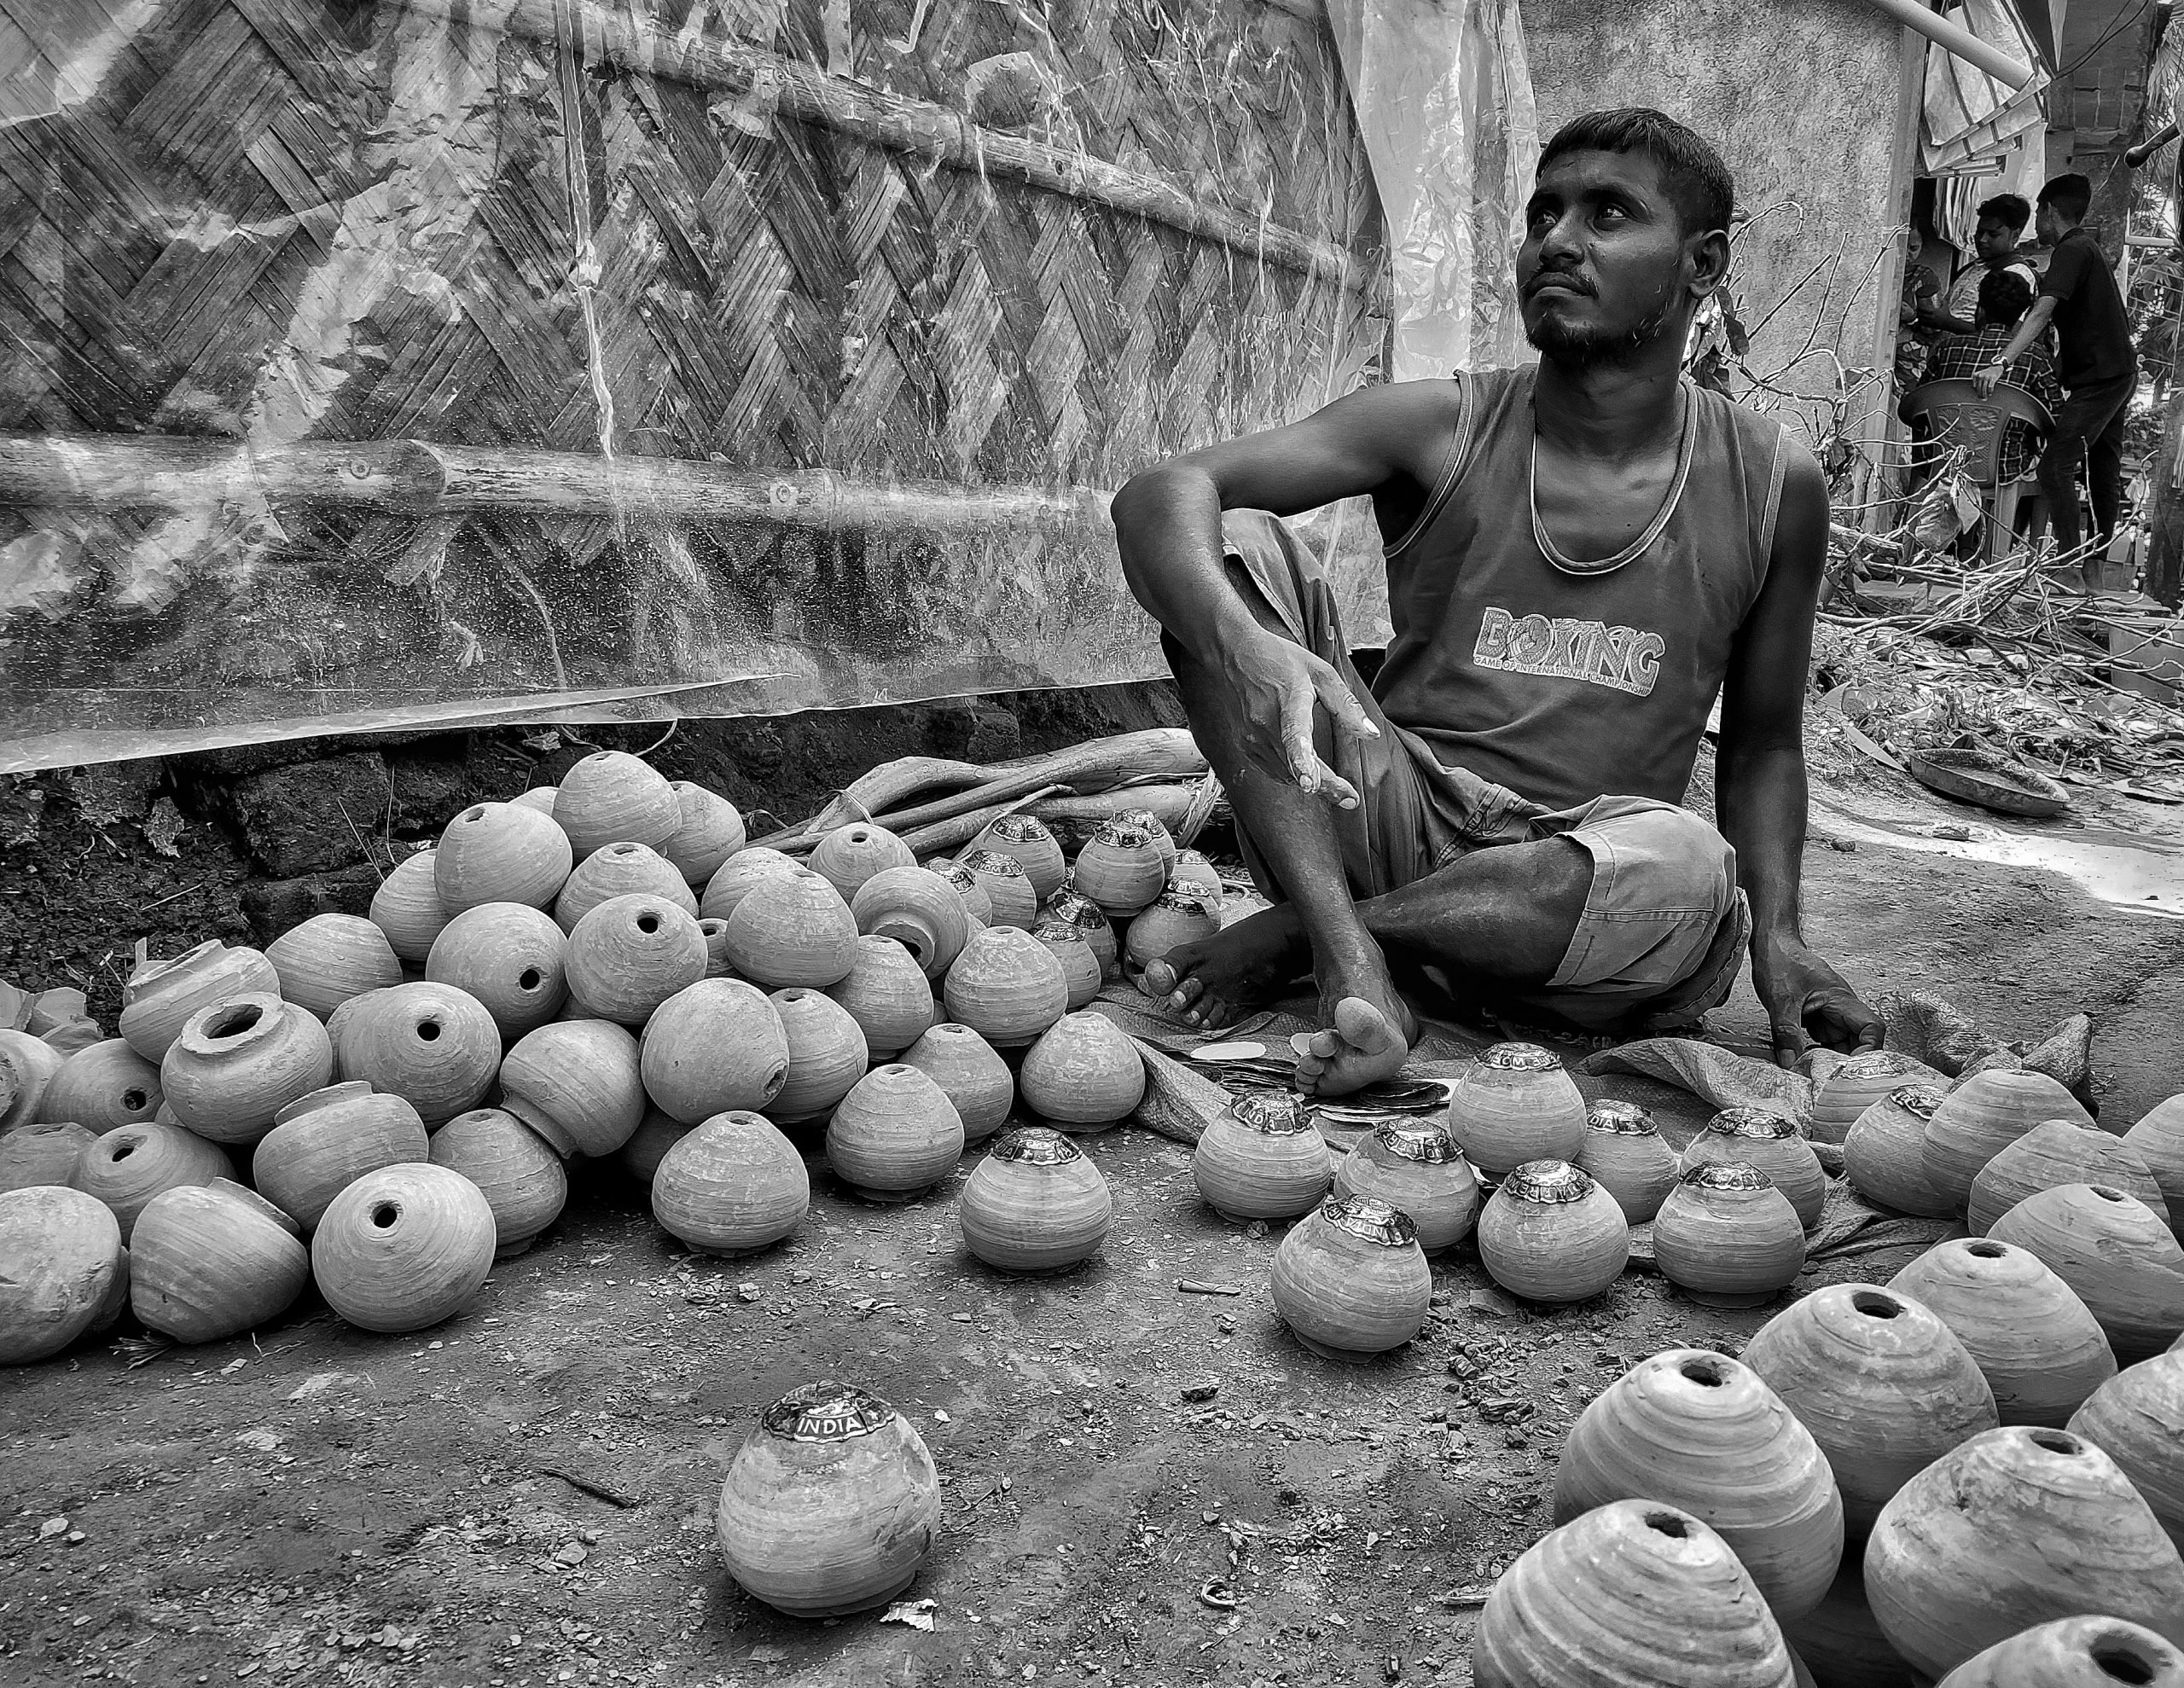 A man selling clay pots